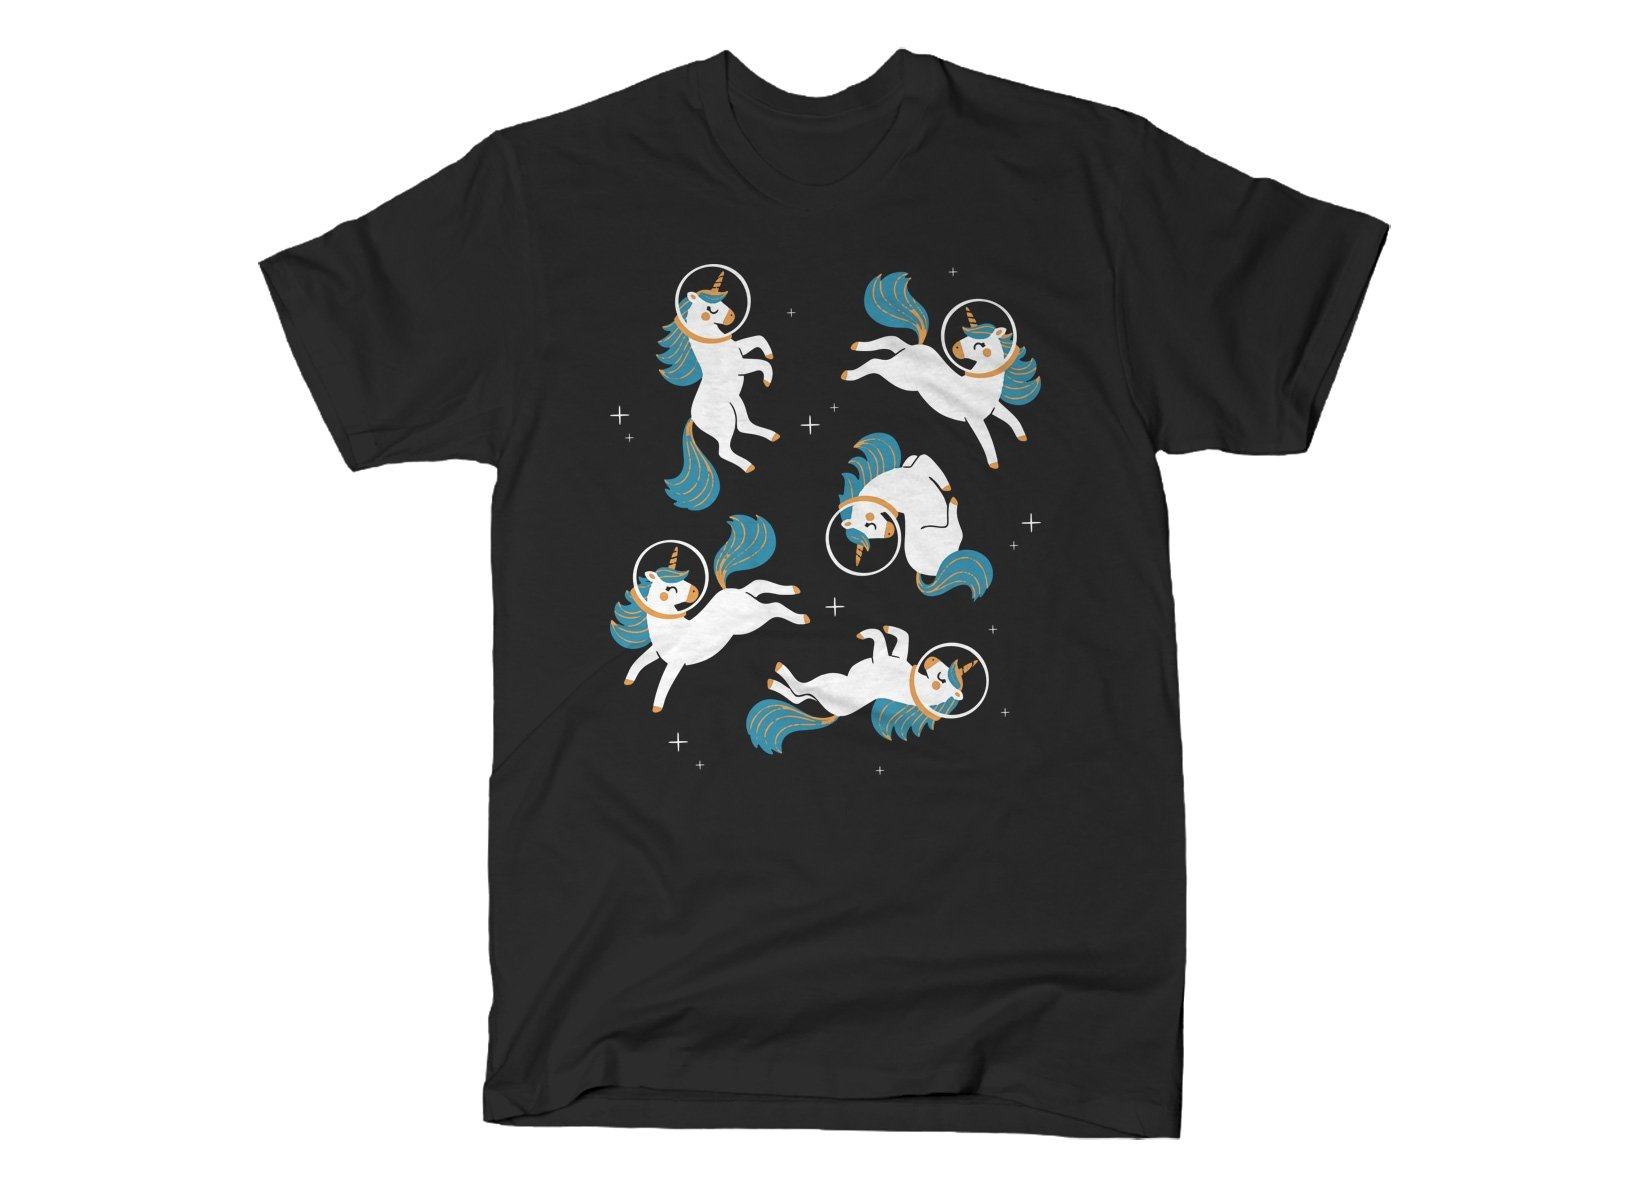 Unicorns In Space on Mens T-Shirt